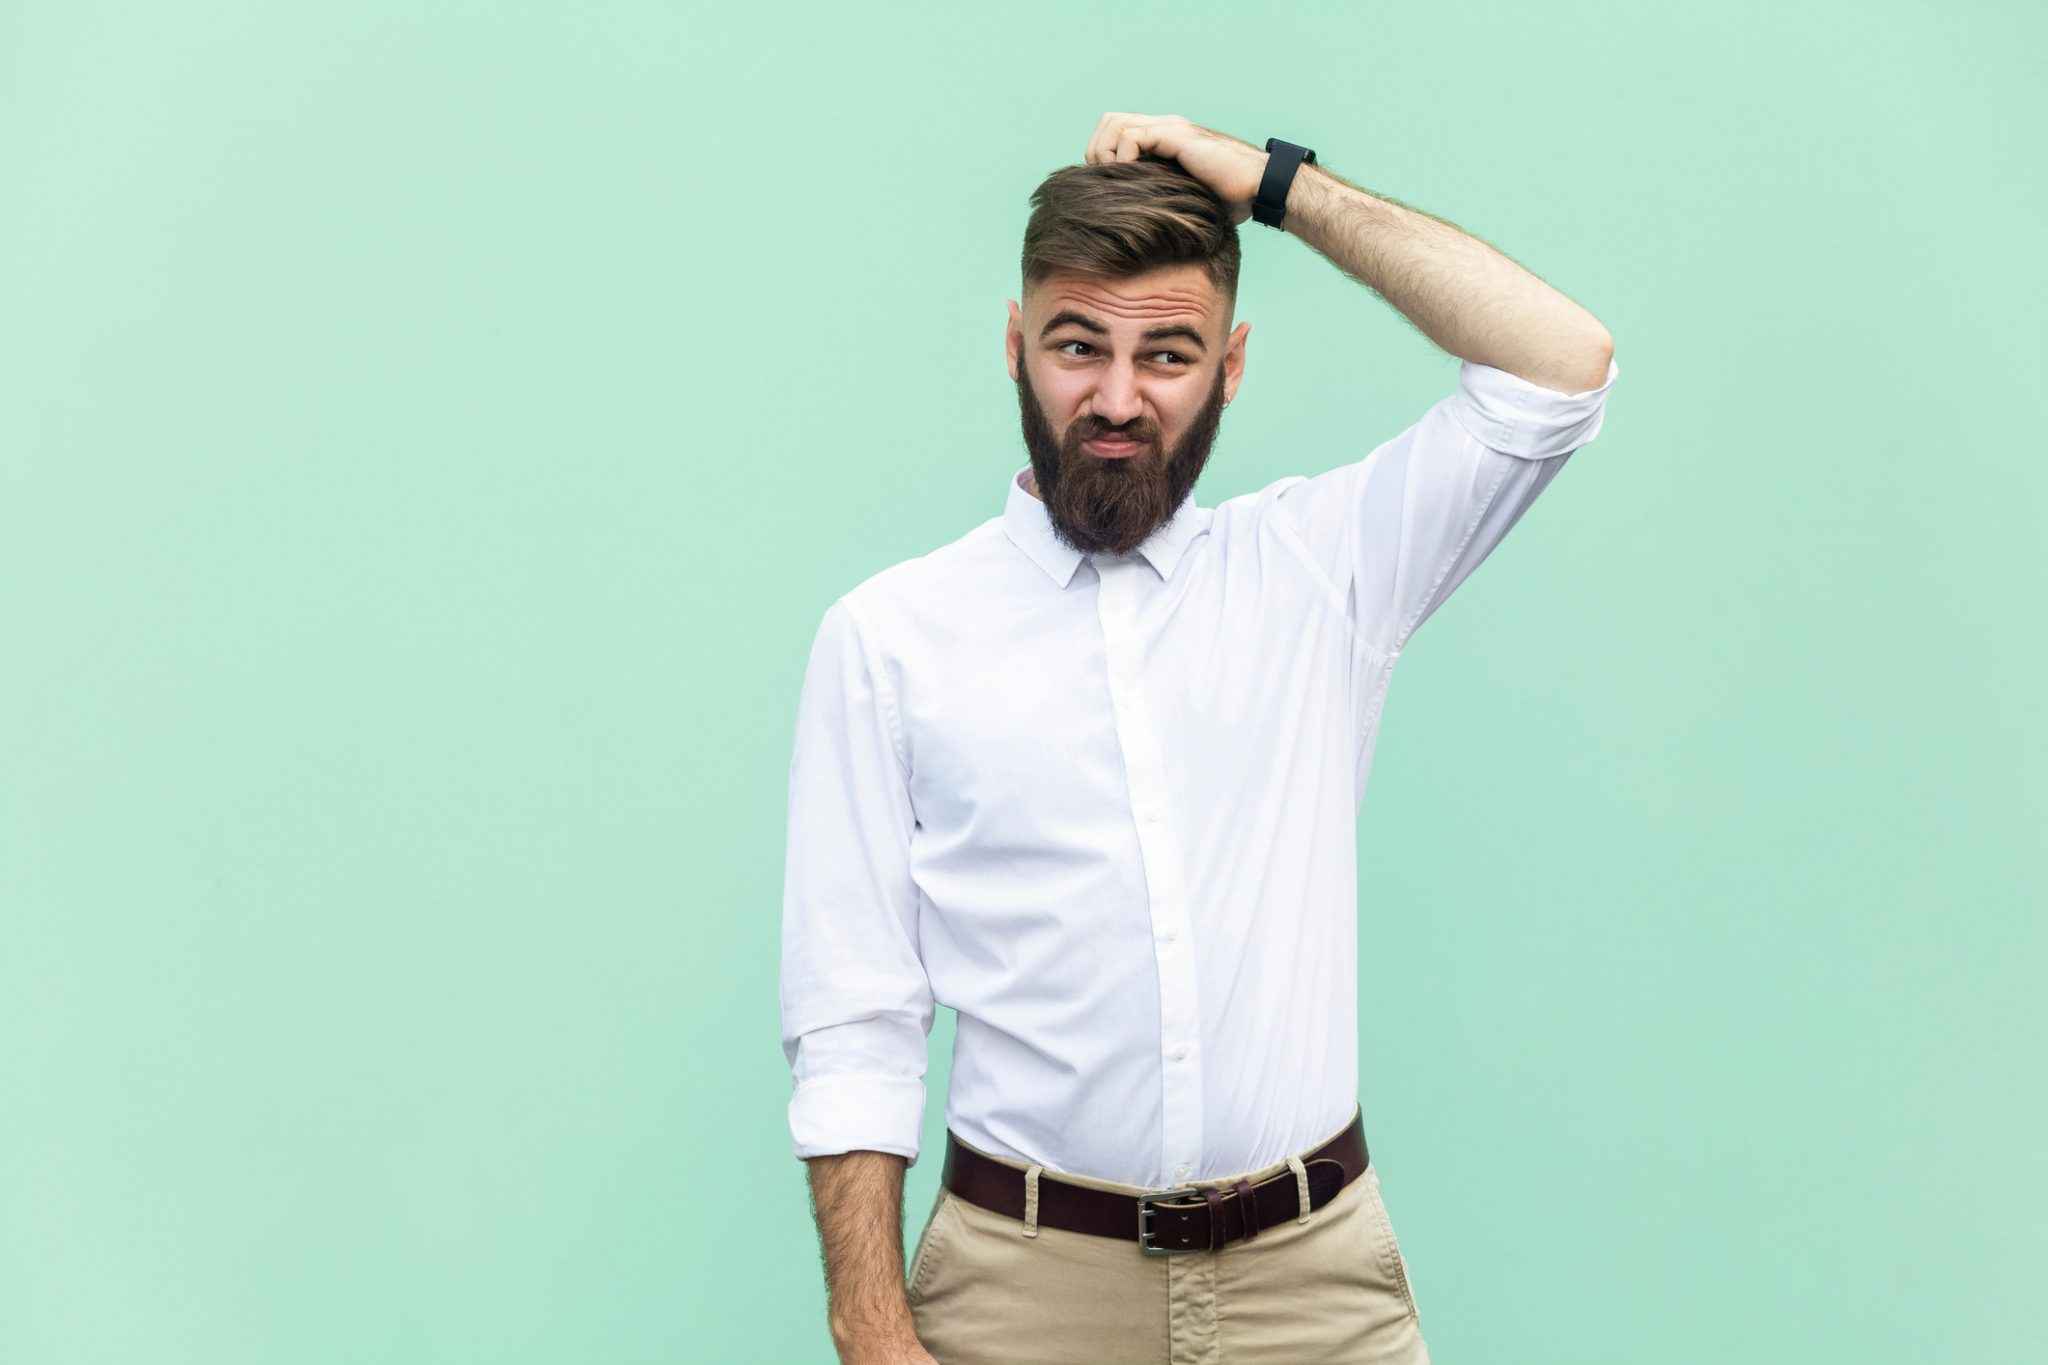 Hipster Free Mobile vente-privee forfait